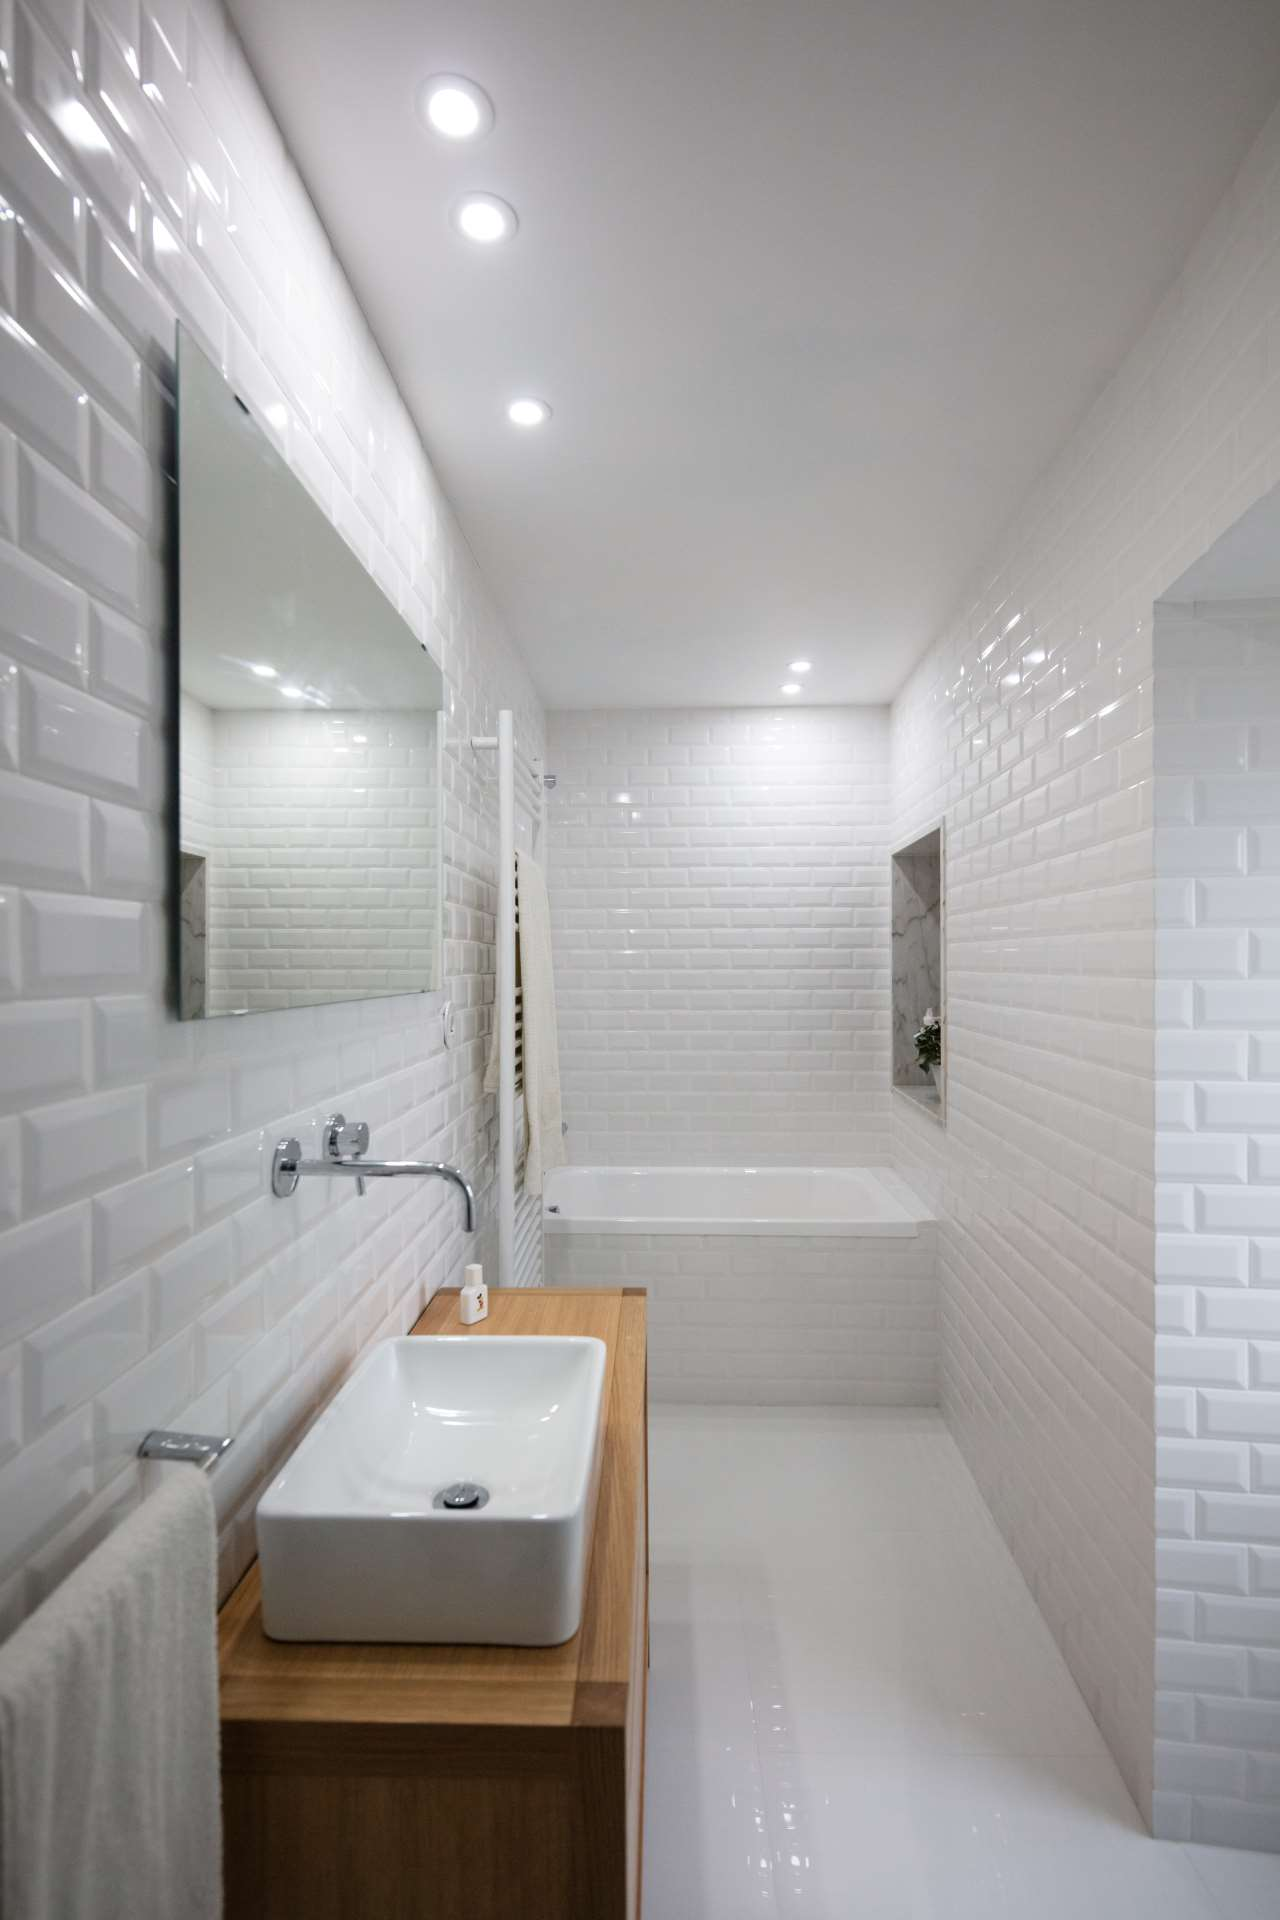 The bathroom is fully done in white, with chic tiles, a wooden vanity and a built in bathtub